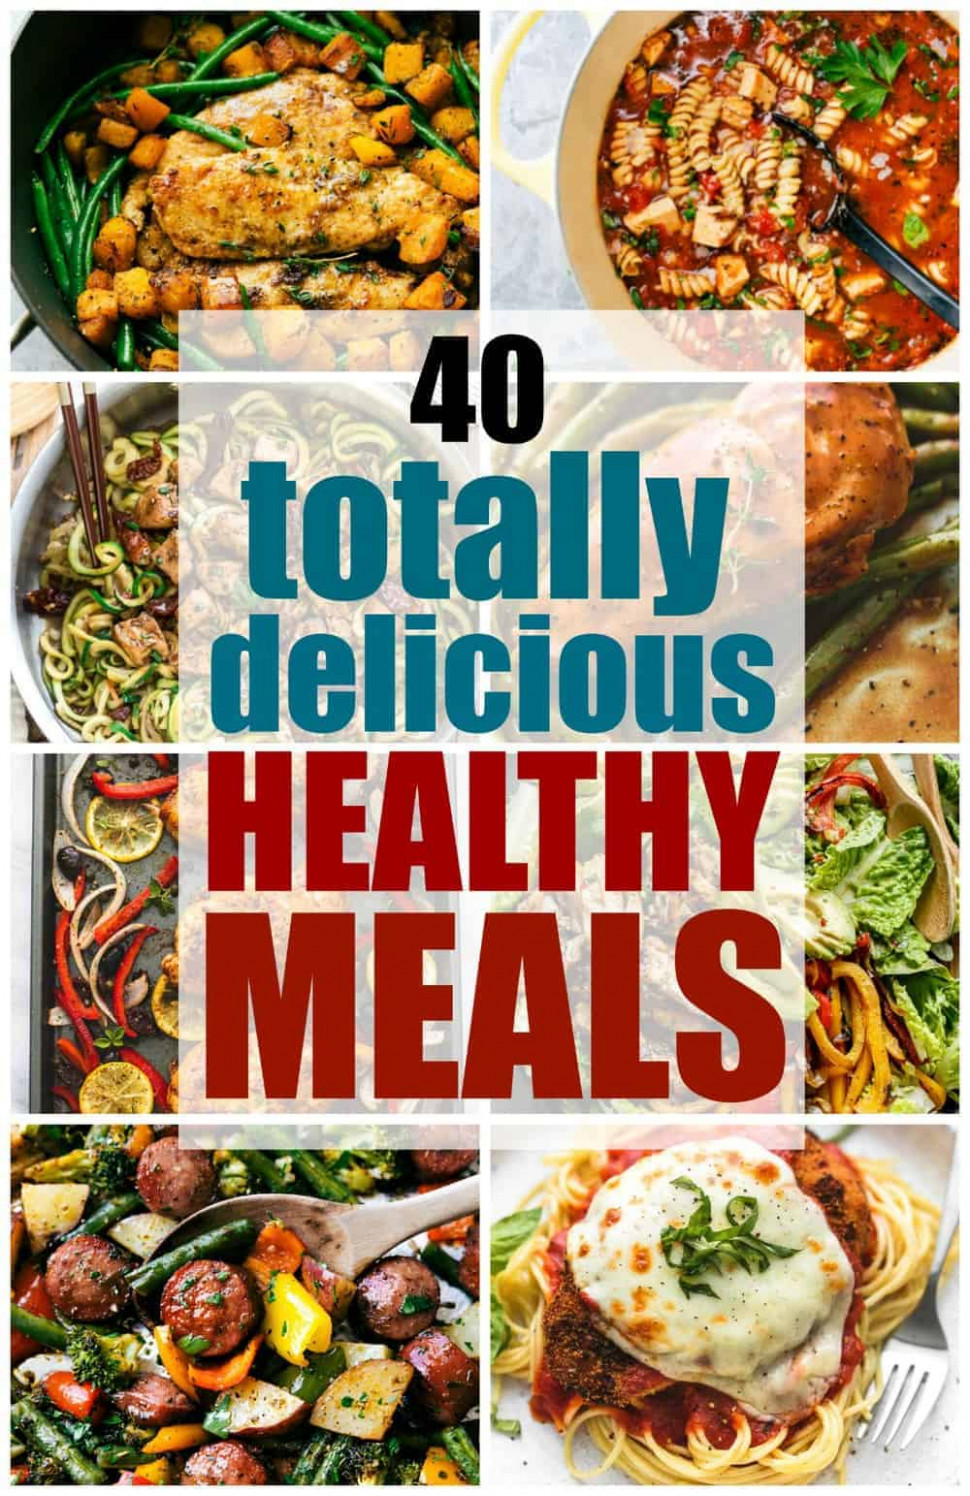 14 Totally Delicious Healthy Meals | The Recipe Critic - healthy recipes allrecipes